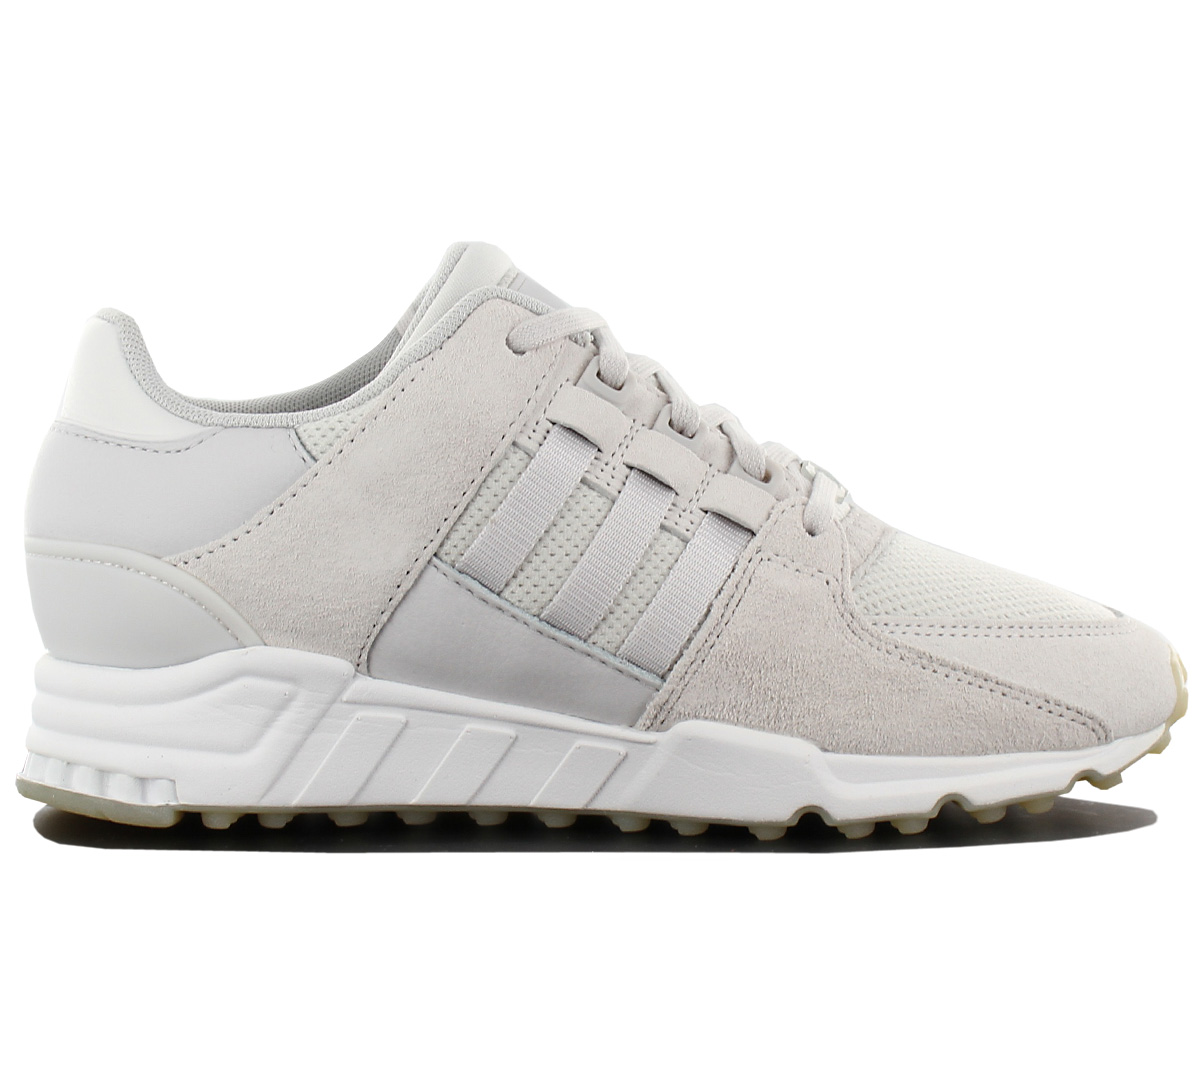 half off 1a6a2 3e26c Details about Adidas Originals Eqt Equipment Support RF W Women's Sneaker  BY9107 New